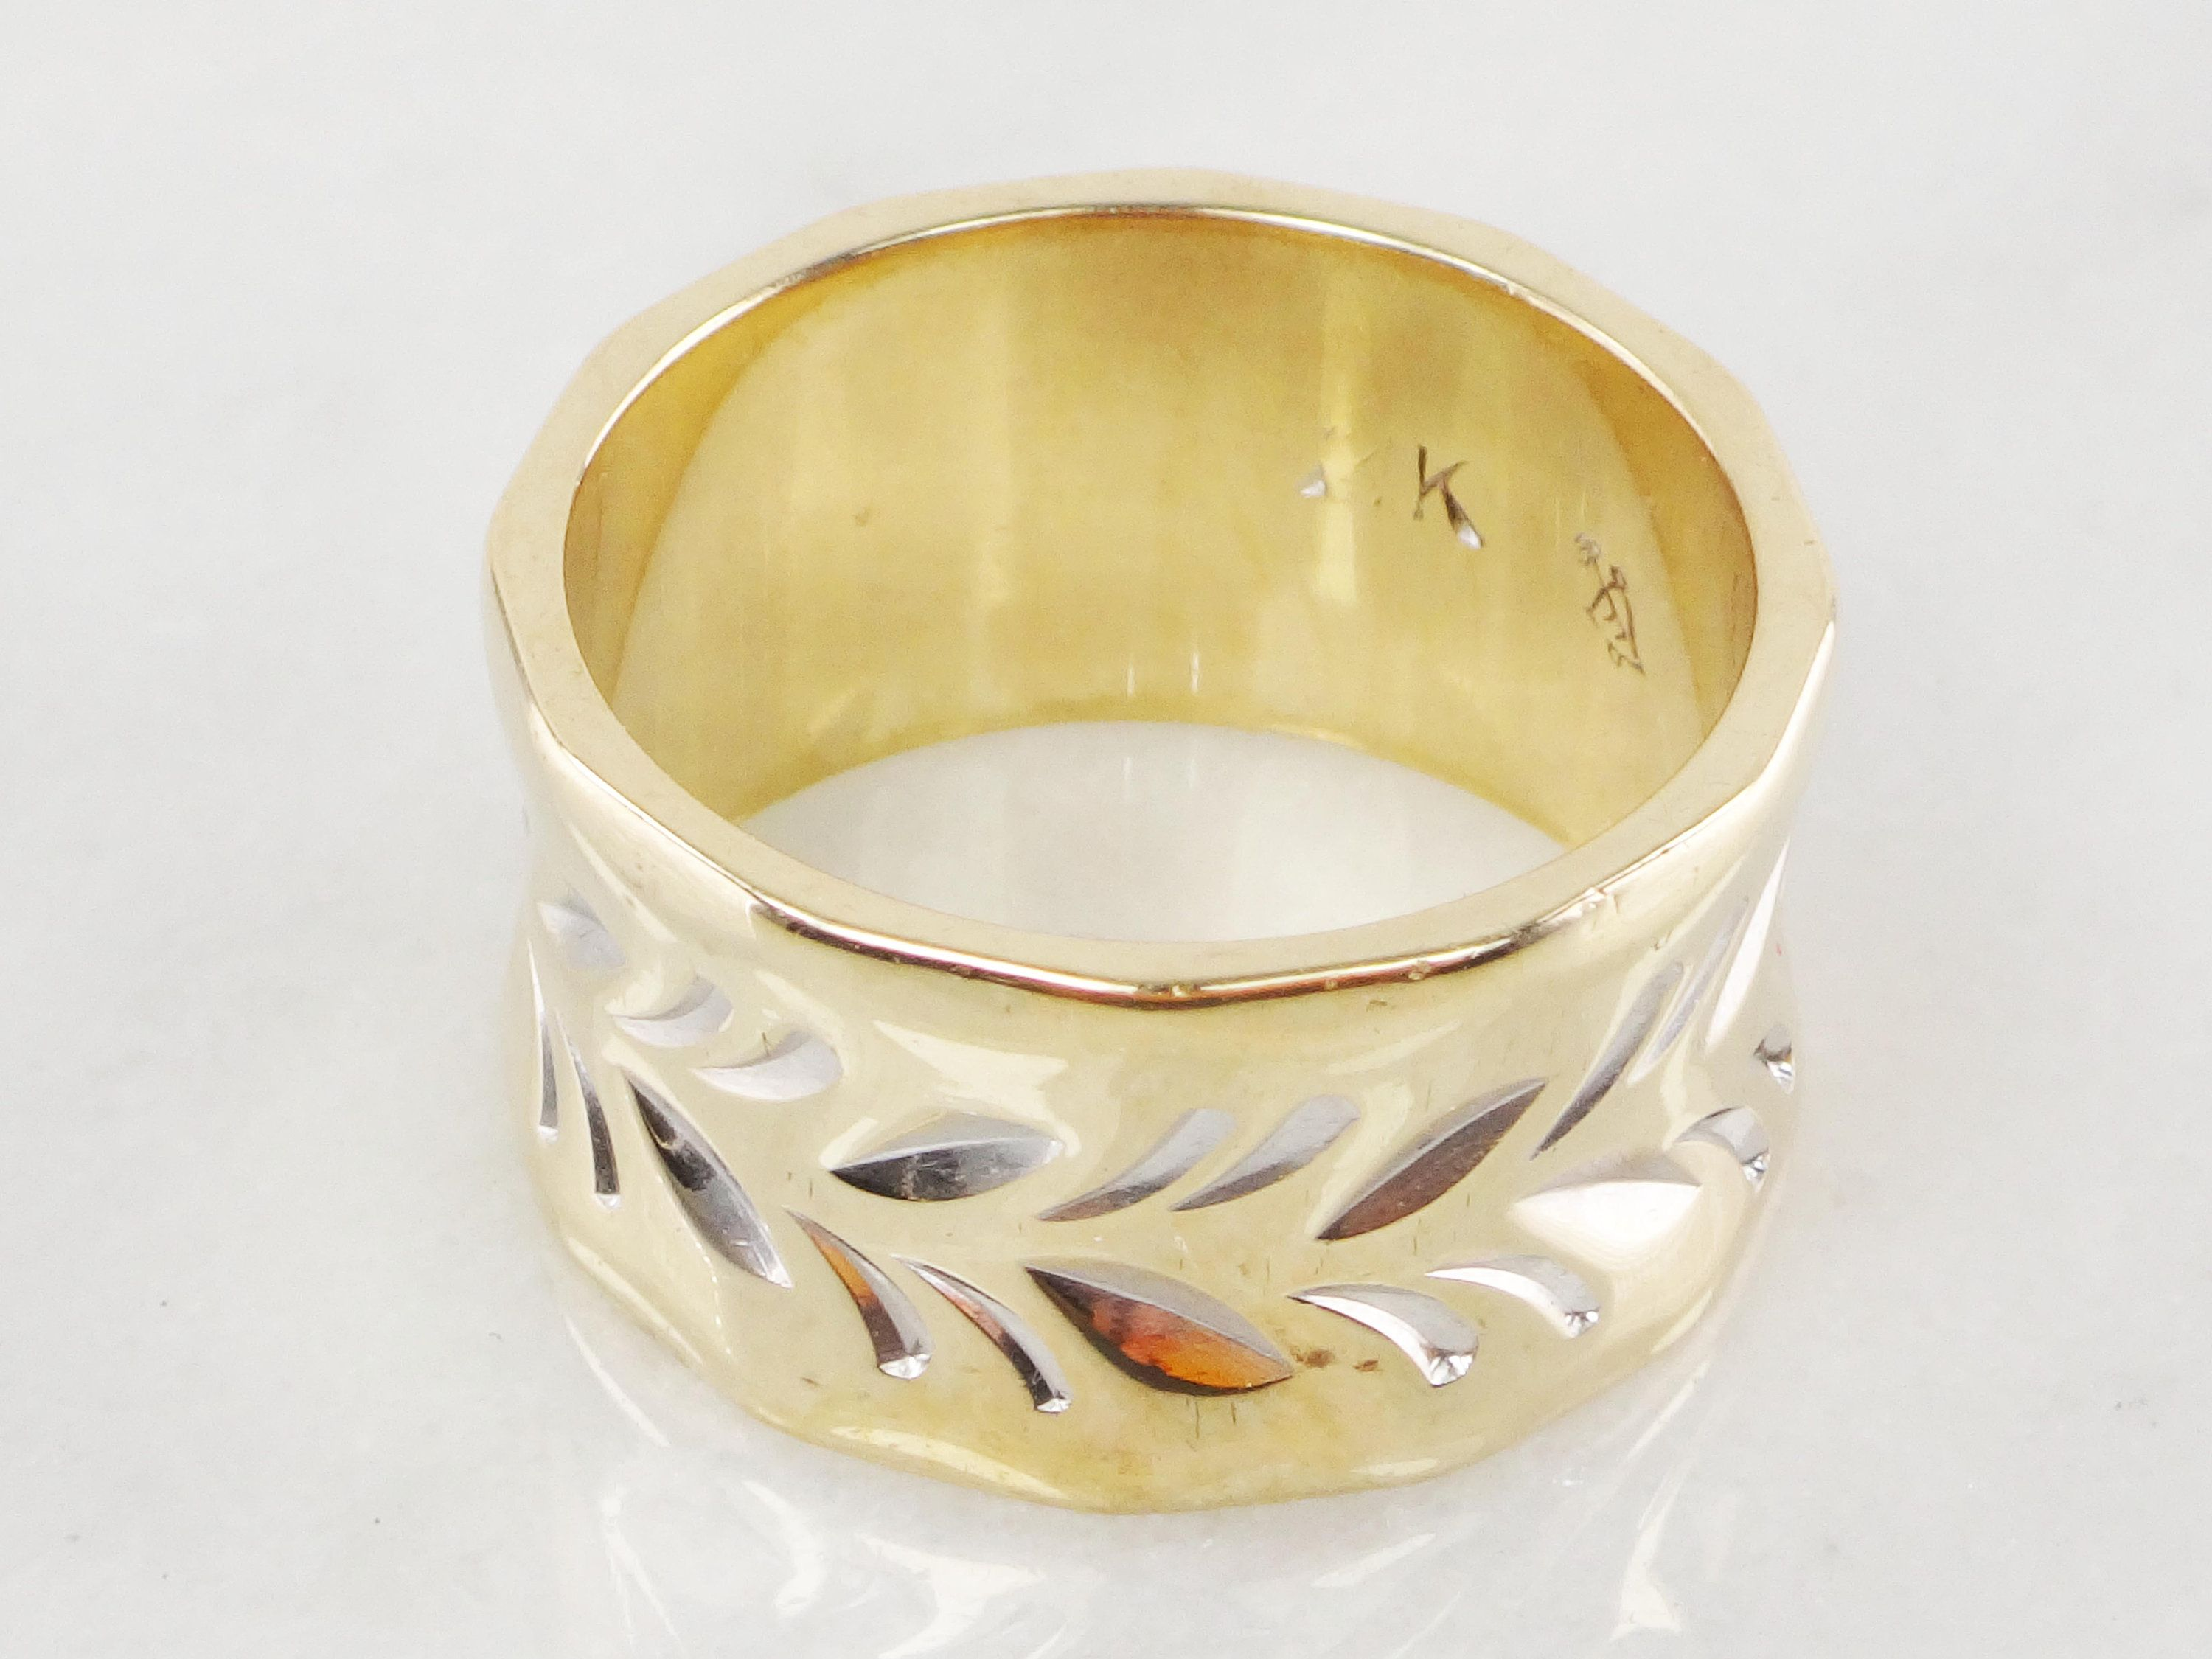 Vintage Wide 14k Gold Wedding Band 10mm Wide Two Tone Gold Wedding Band Vintage Wedding Band With 14k Gold Wedding Band Gold Wedding Band Vintage Wedding Band